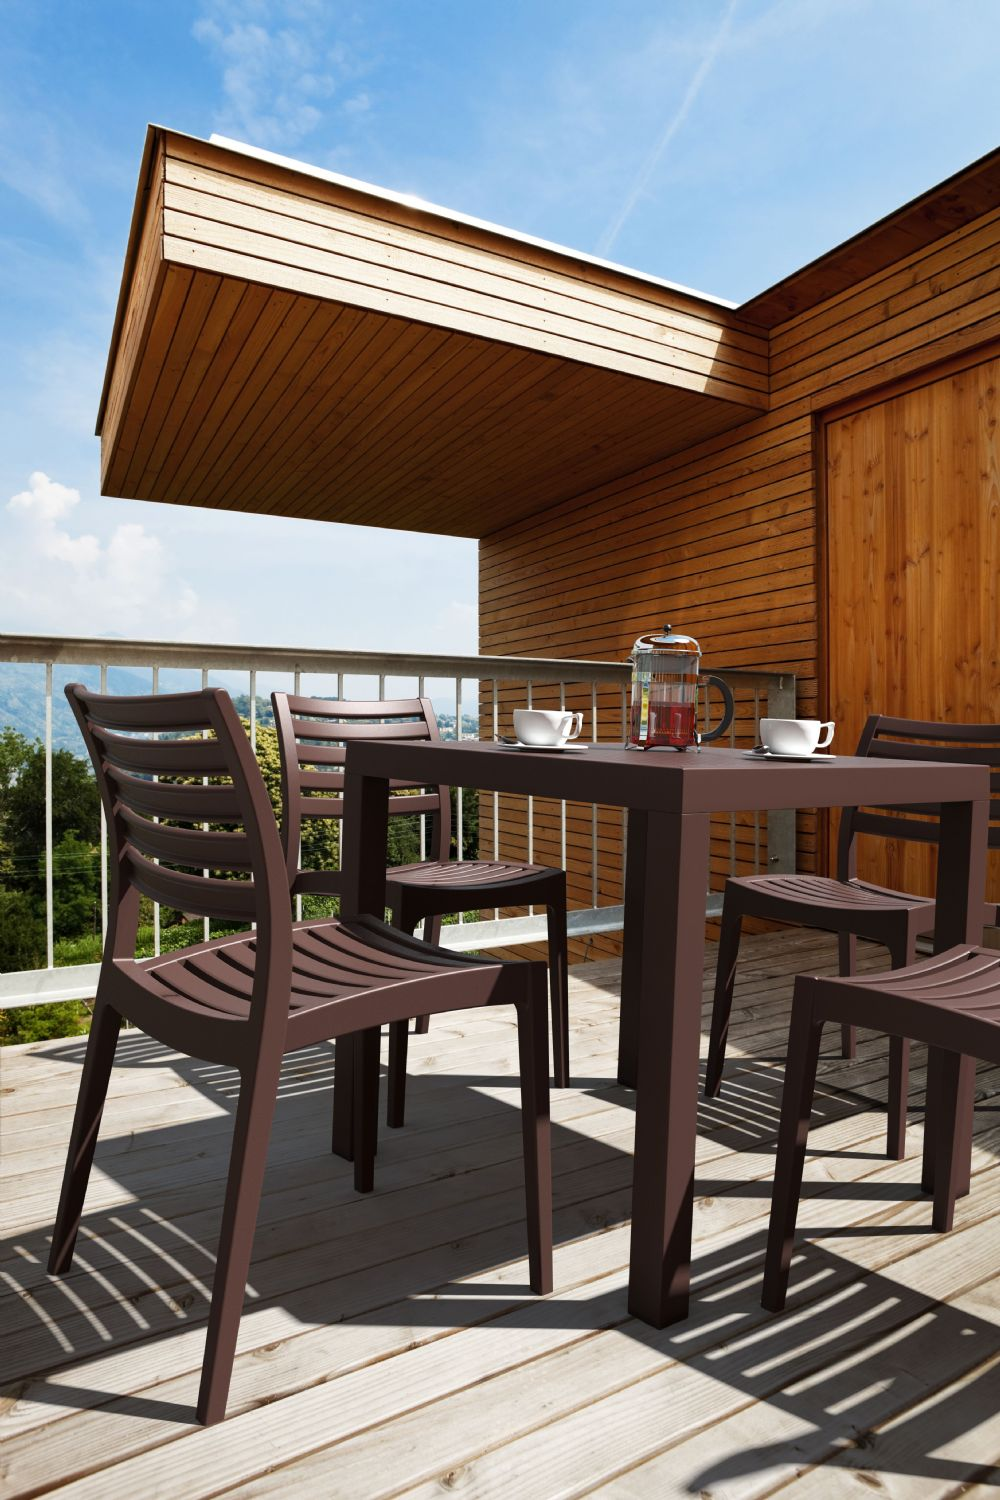 Ares Resin Square Outdoor Dining Set 5 Piece with Side Chairs Brown ISP1641S-BRW - 4